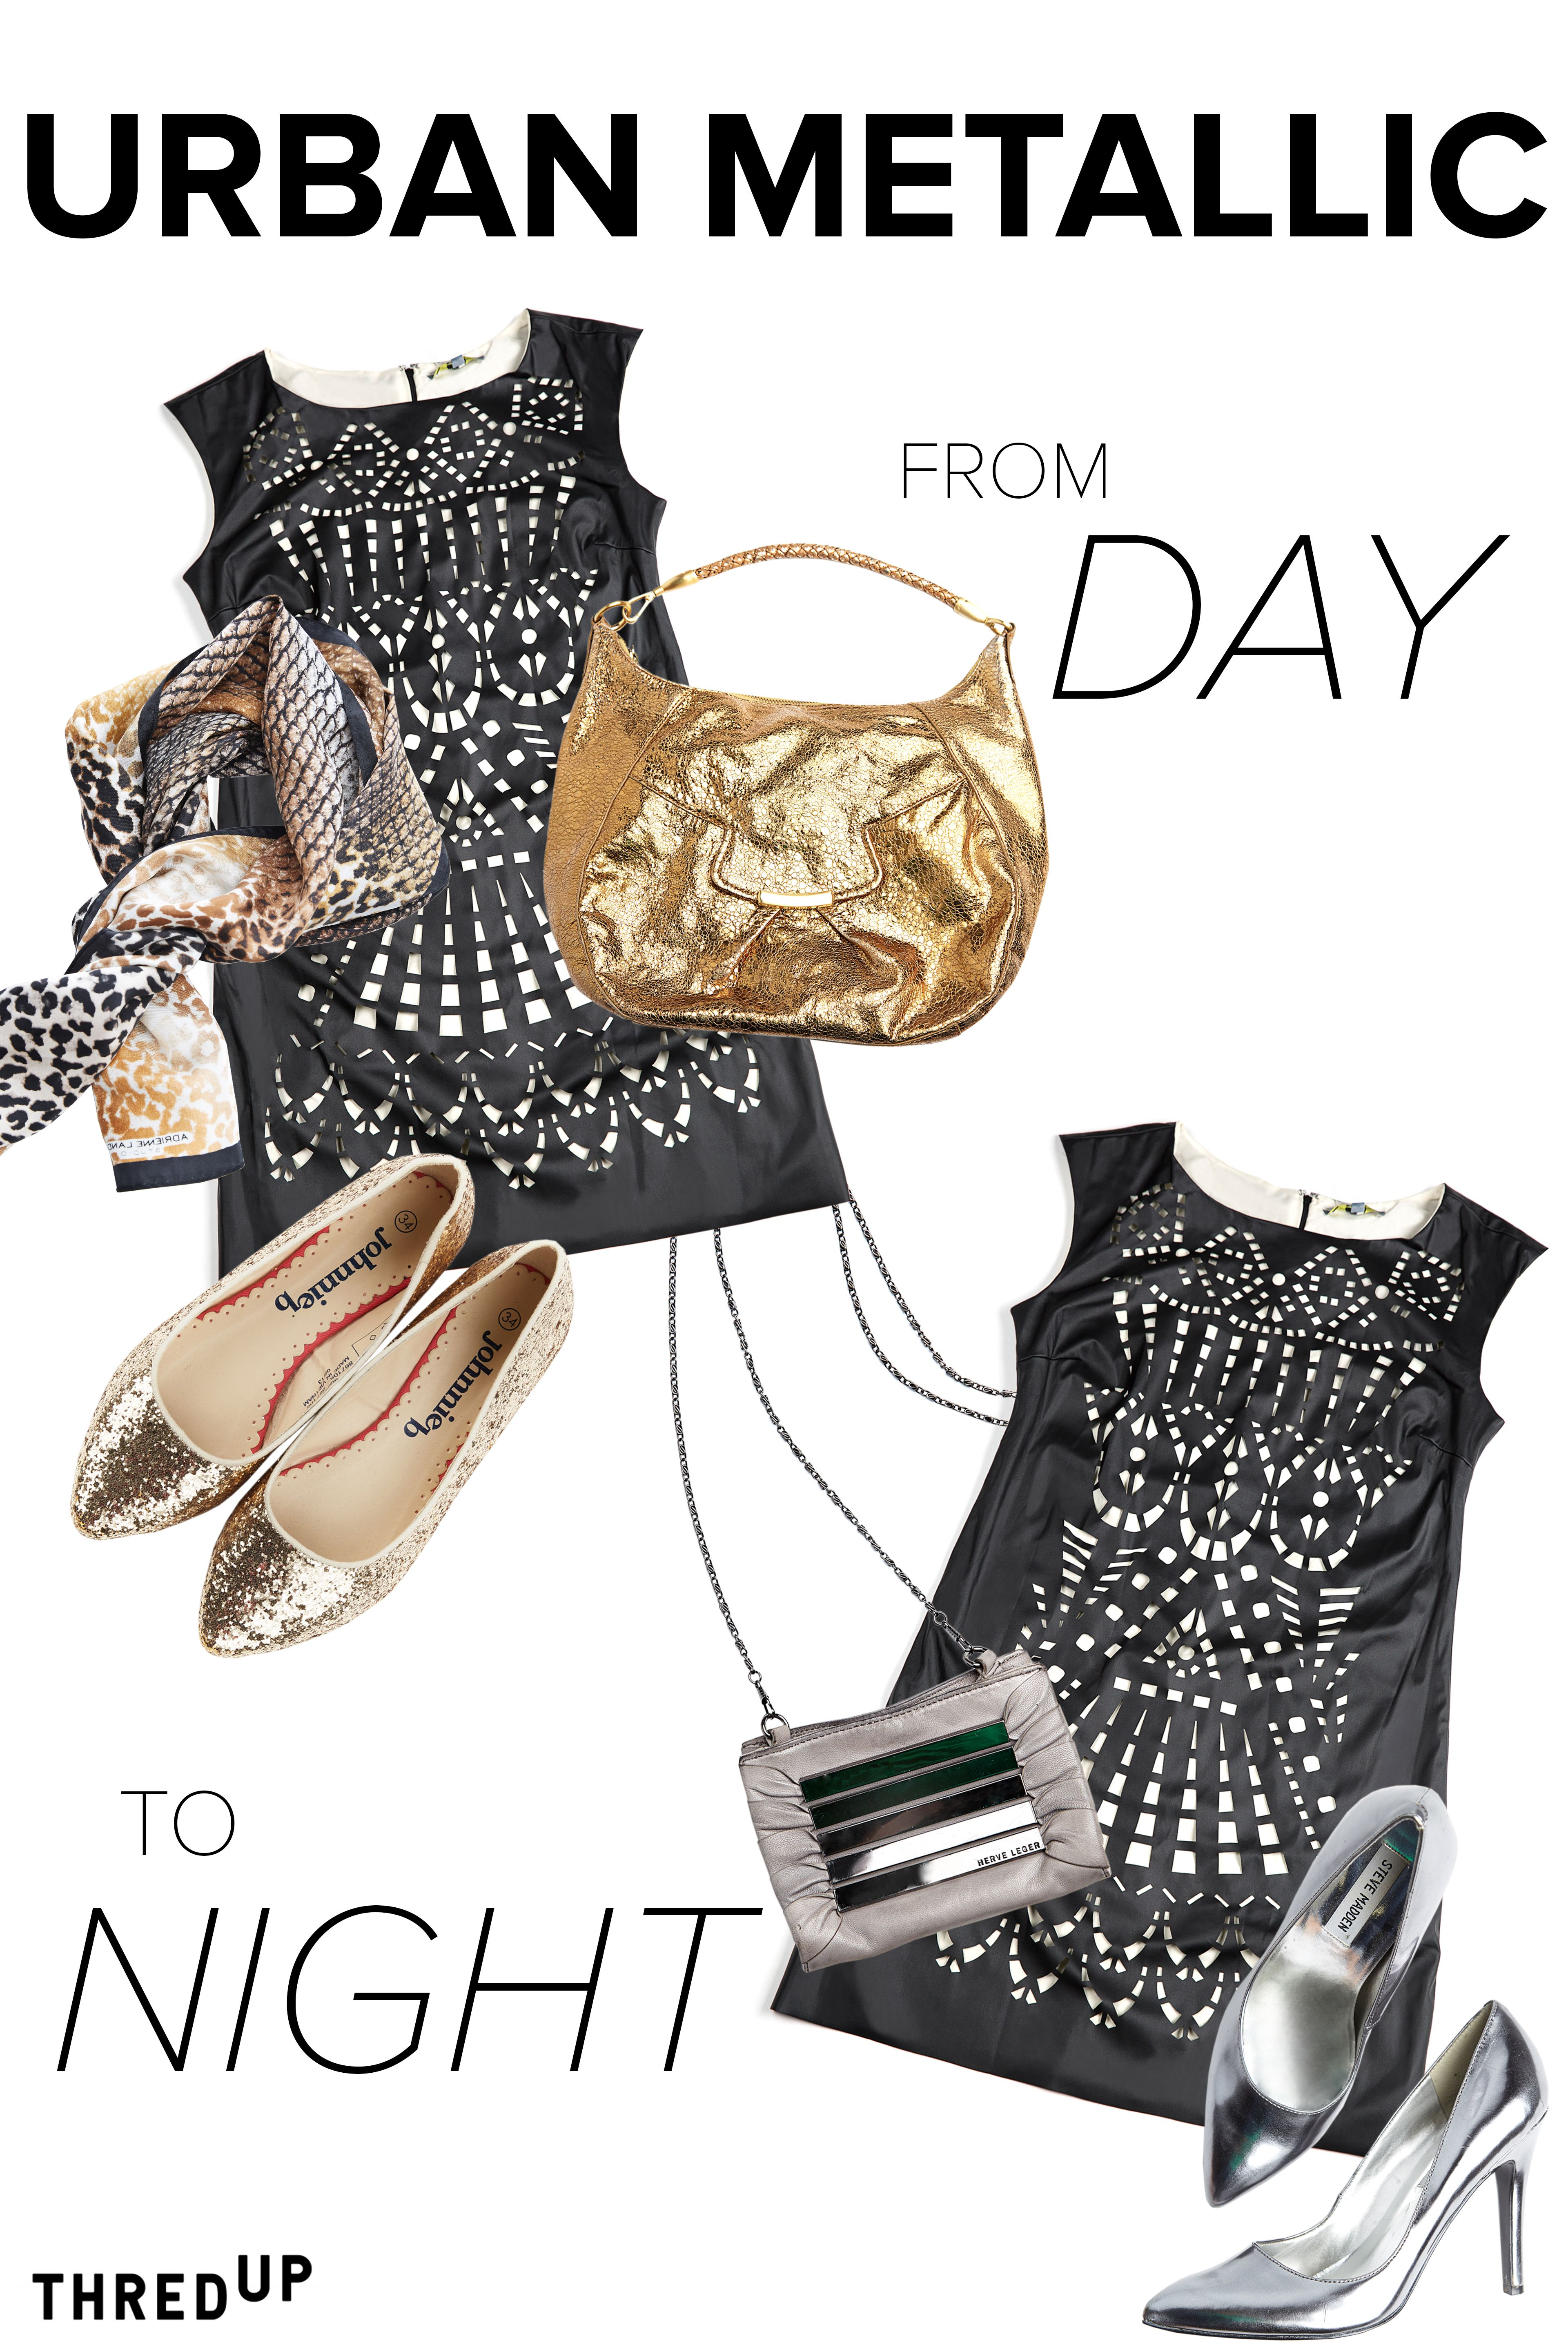 Take your look from day to night, featuring Urban Metallic